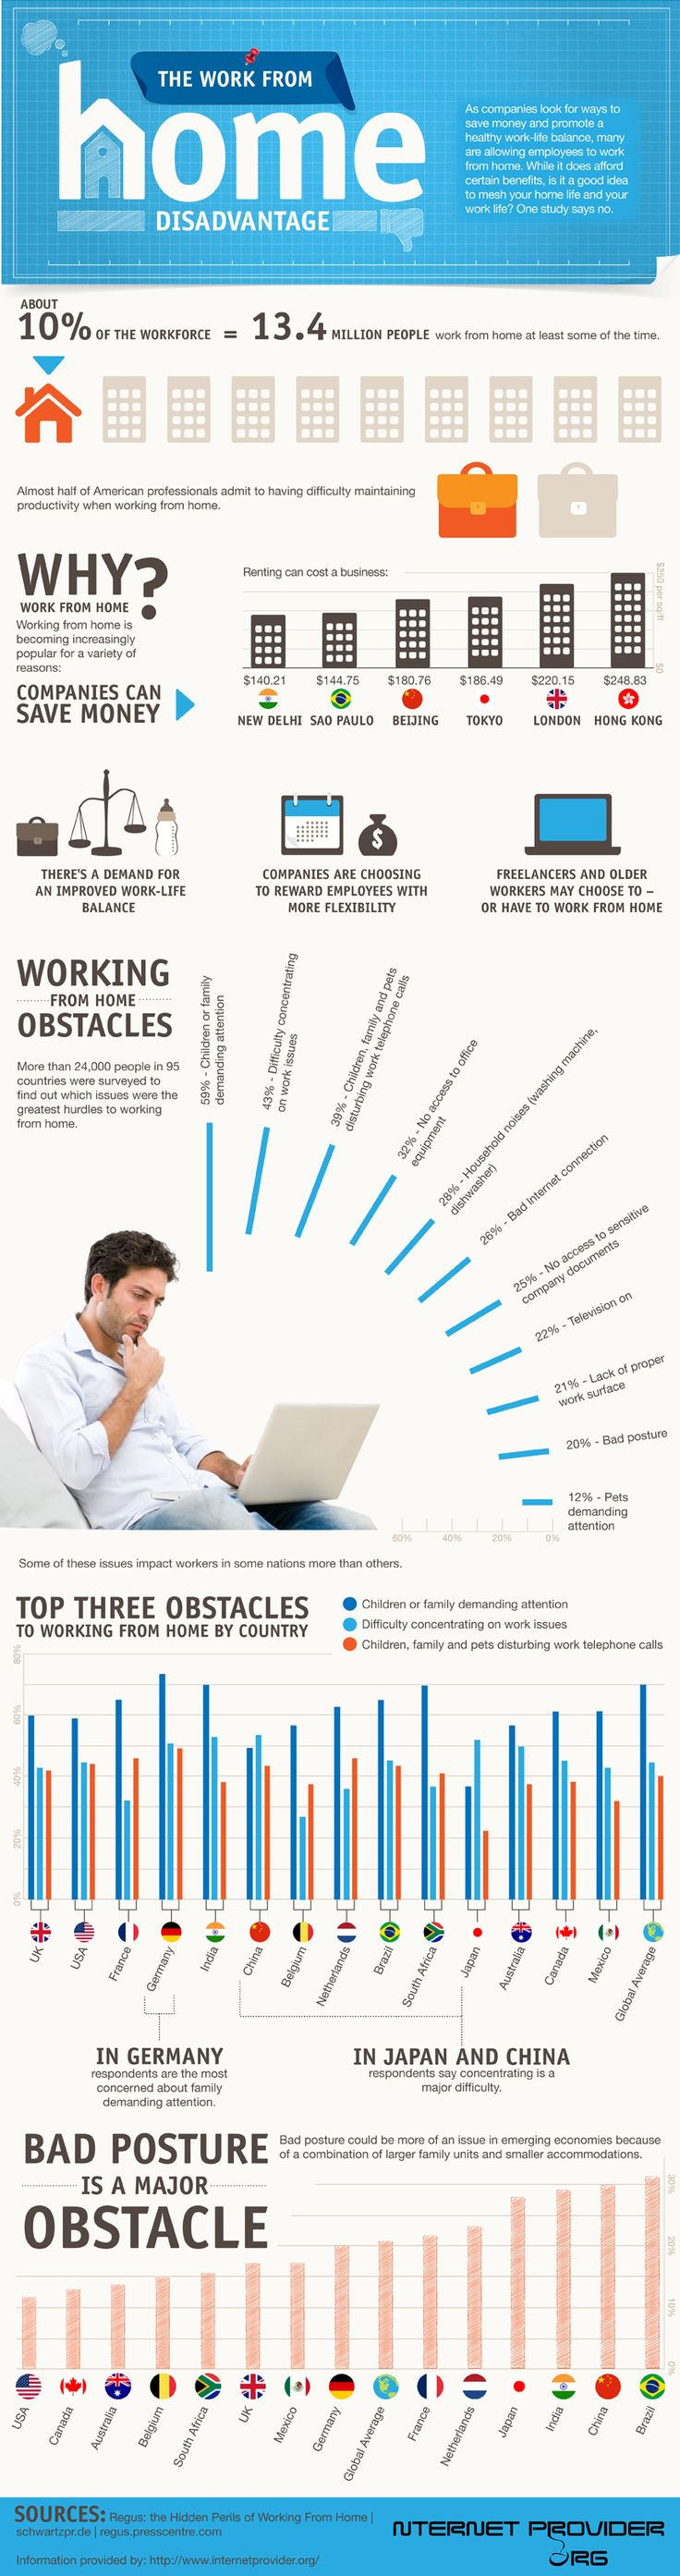 best Work from Home images on Pinterest